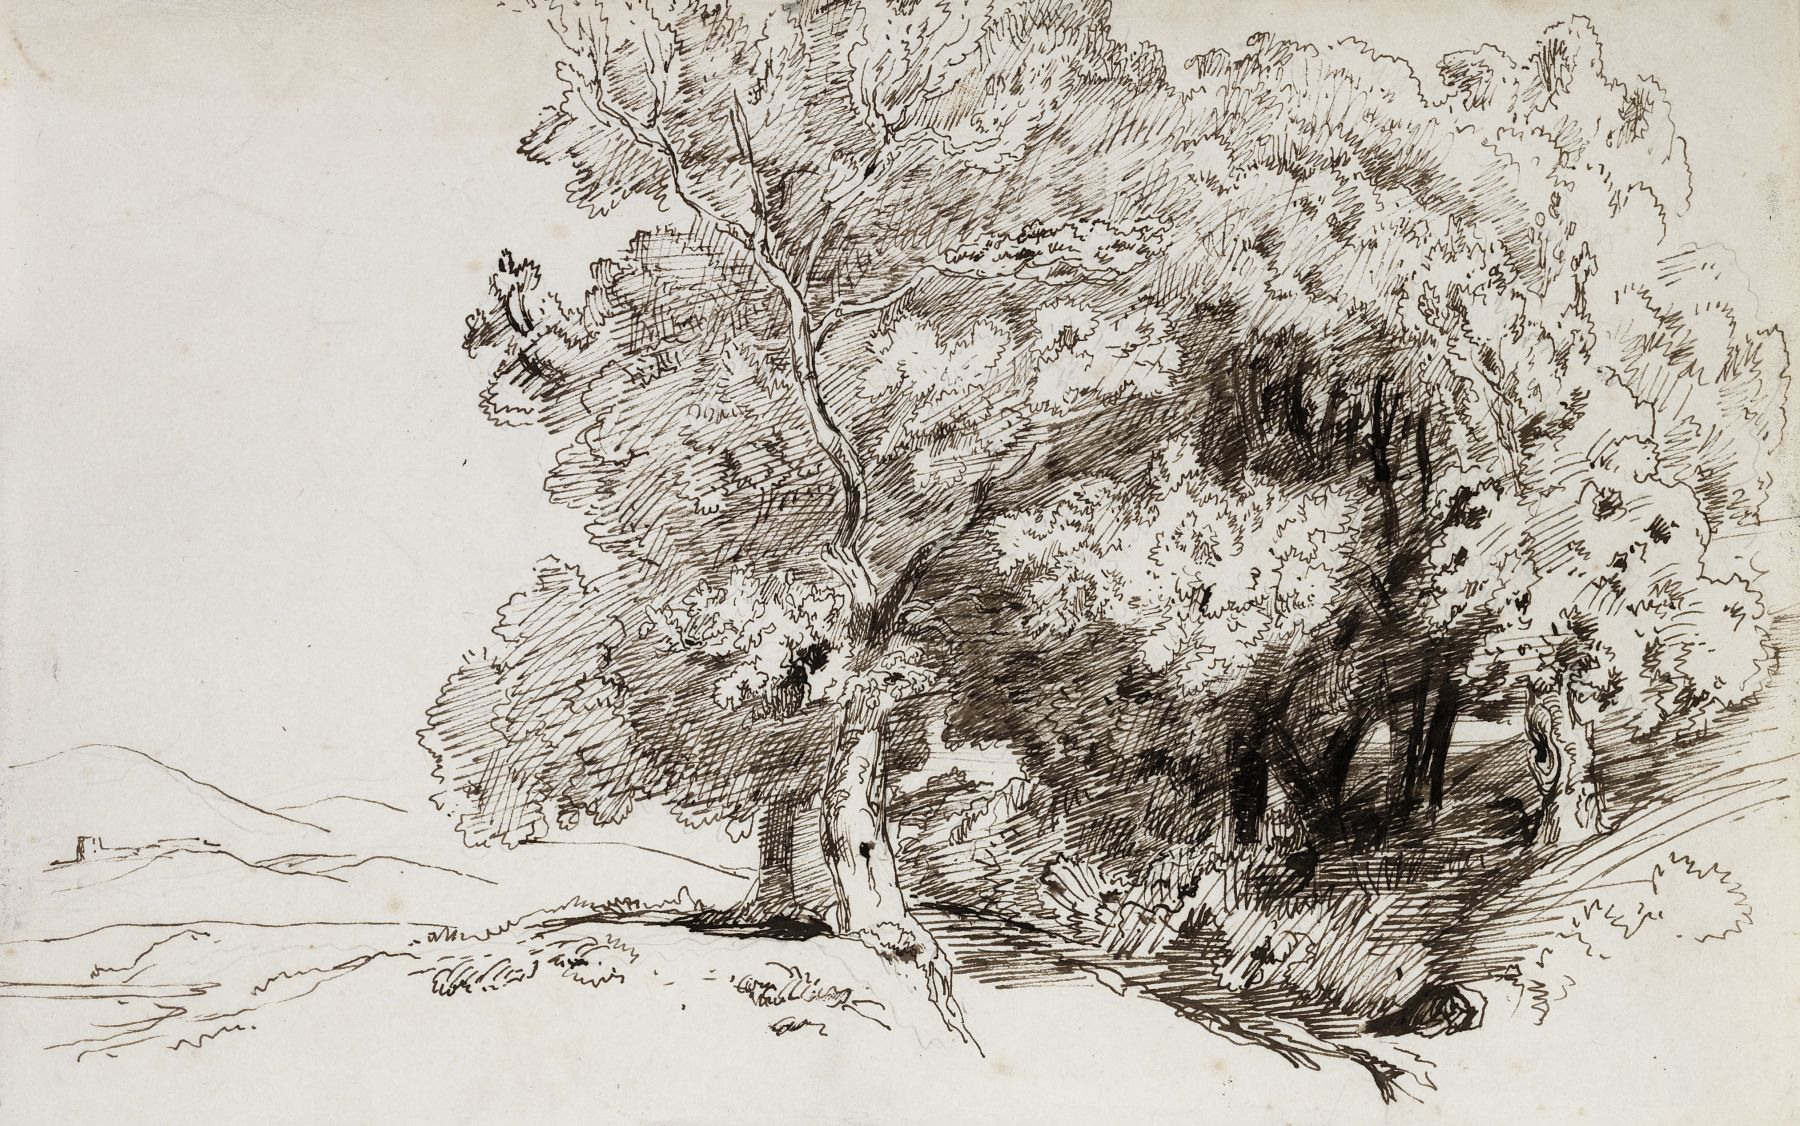 Paul Huet  A Copse of Trees with a Town in the Distance  Pen and ink on paper 8 5/8 x 13 9/16 inches